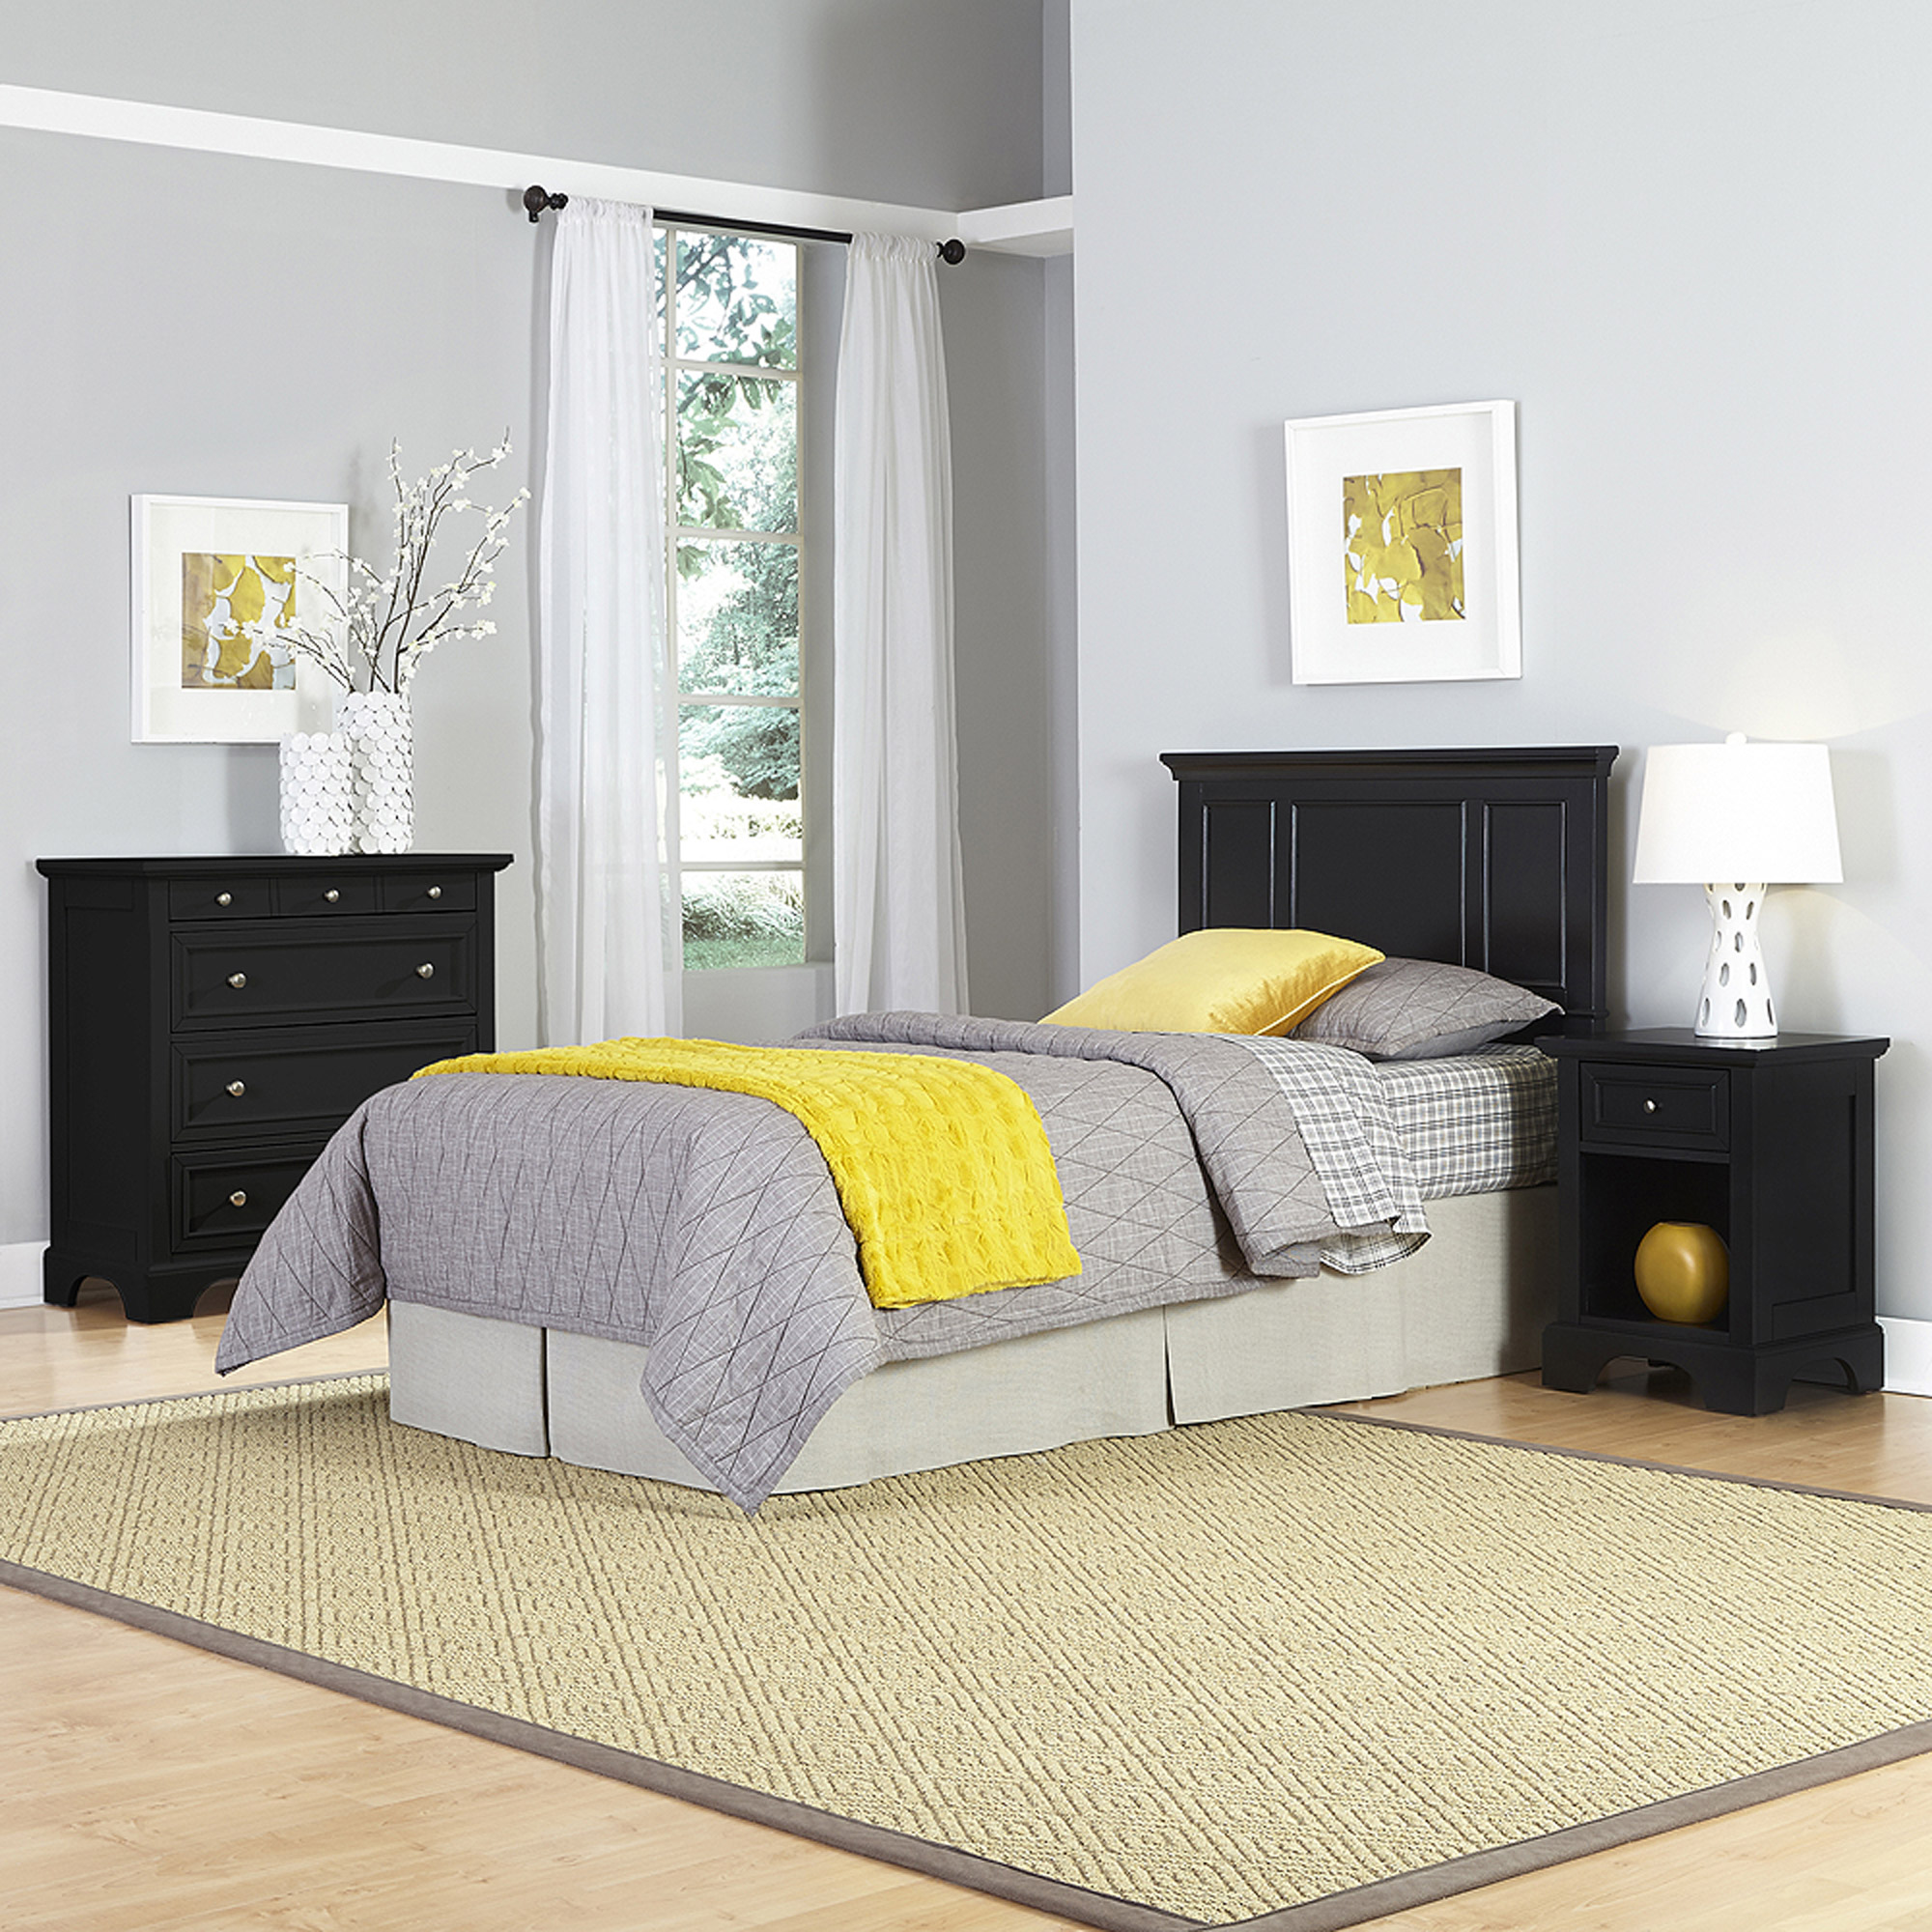 Home Styles Bedford Twin Headboard, Night Stand and Chest